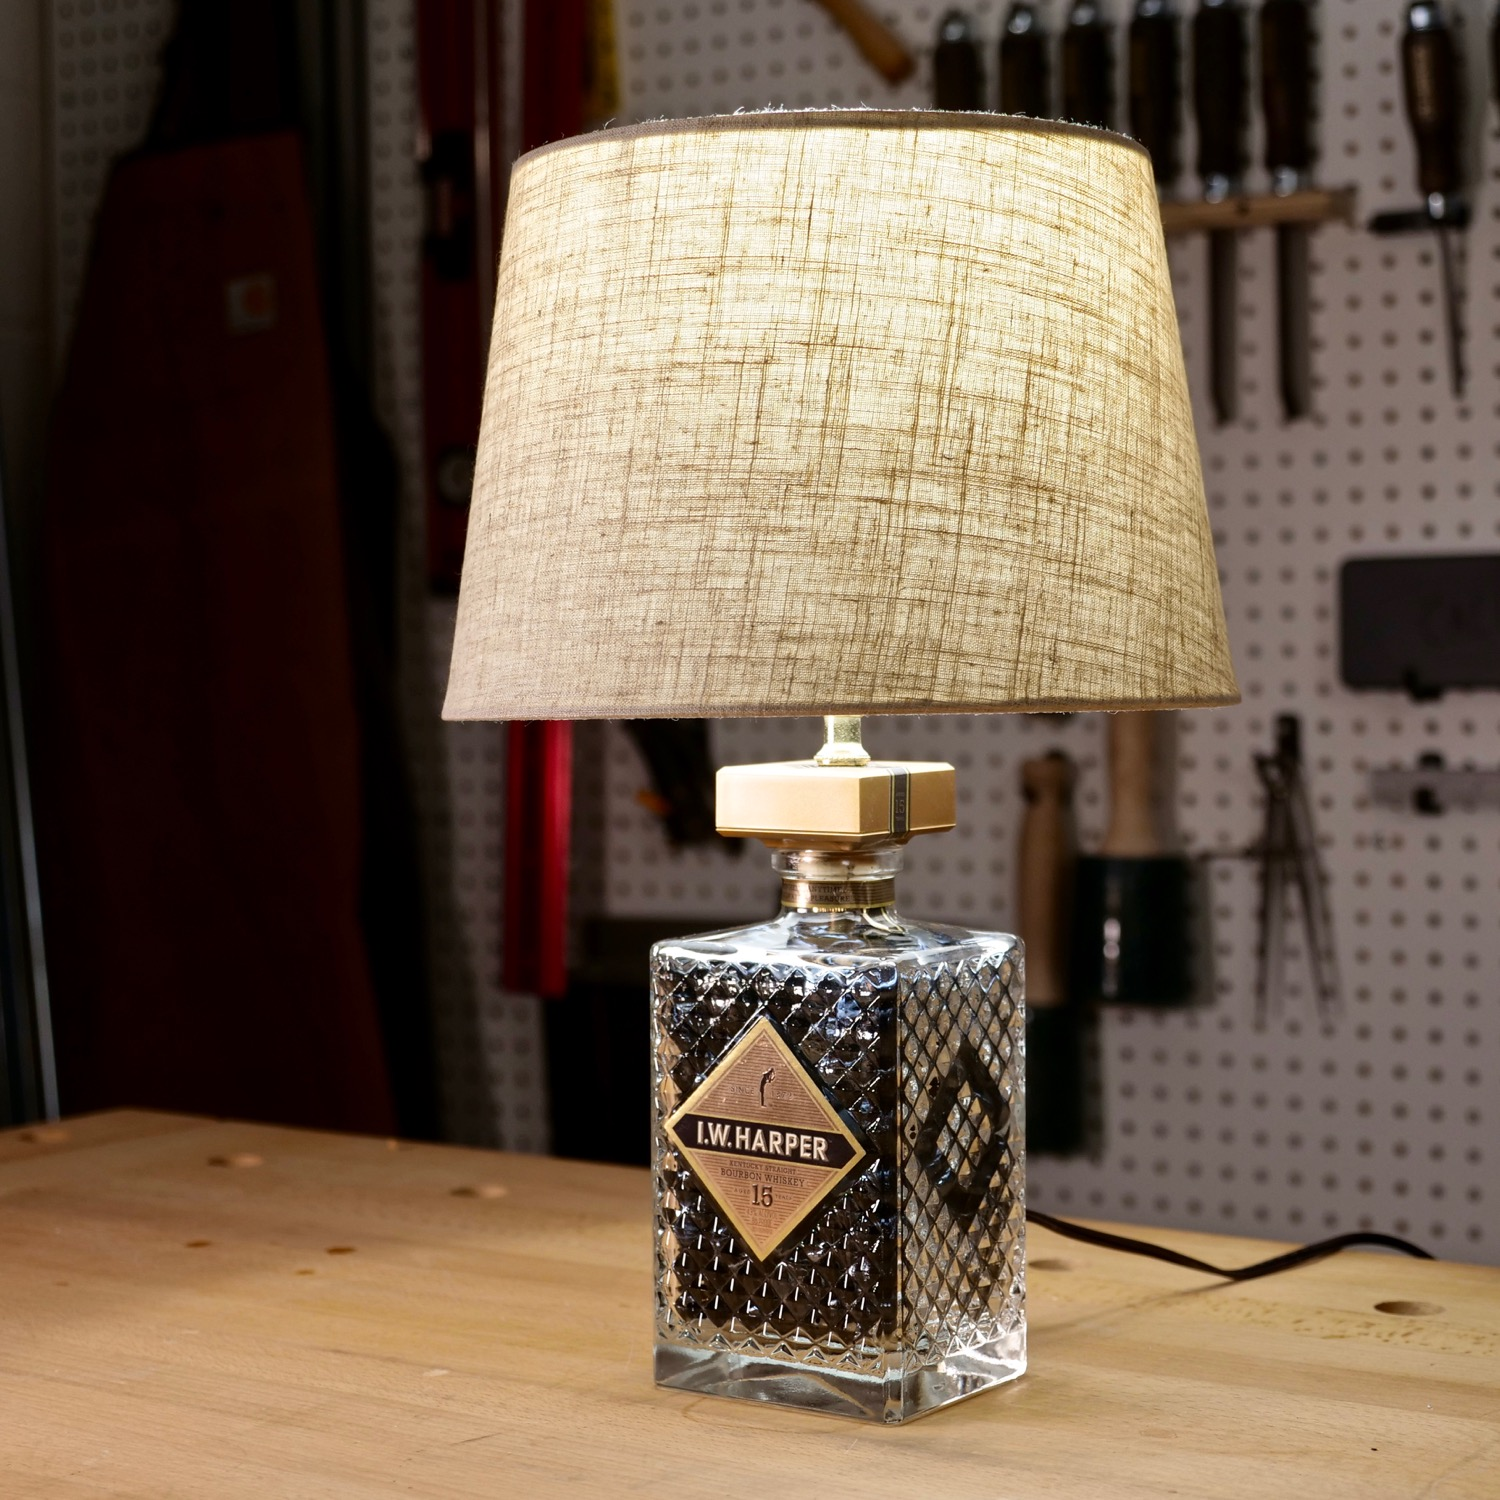 How To Build A Diy Bottle Lamp Dartboard Cabinet Yeti